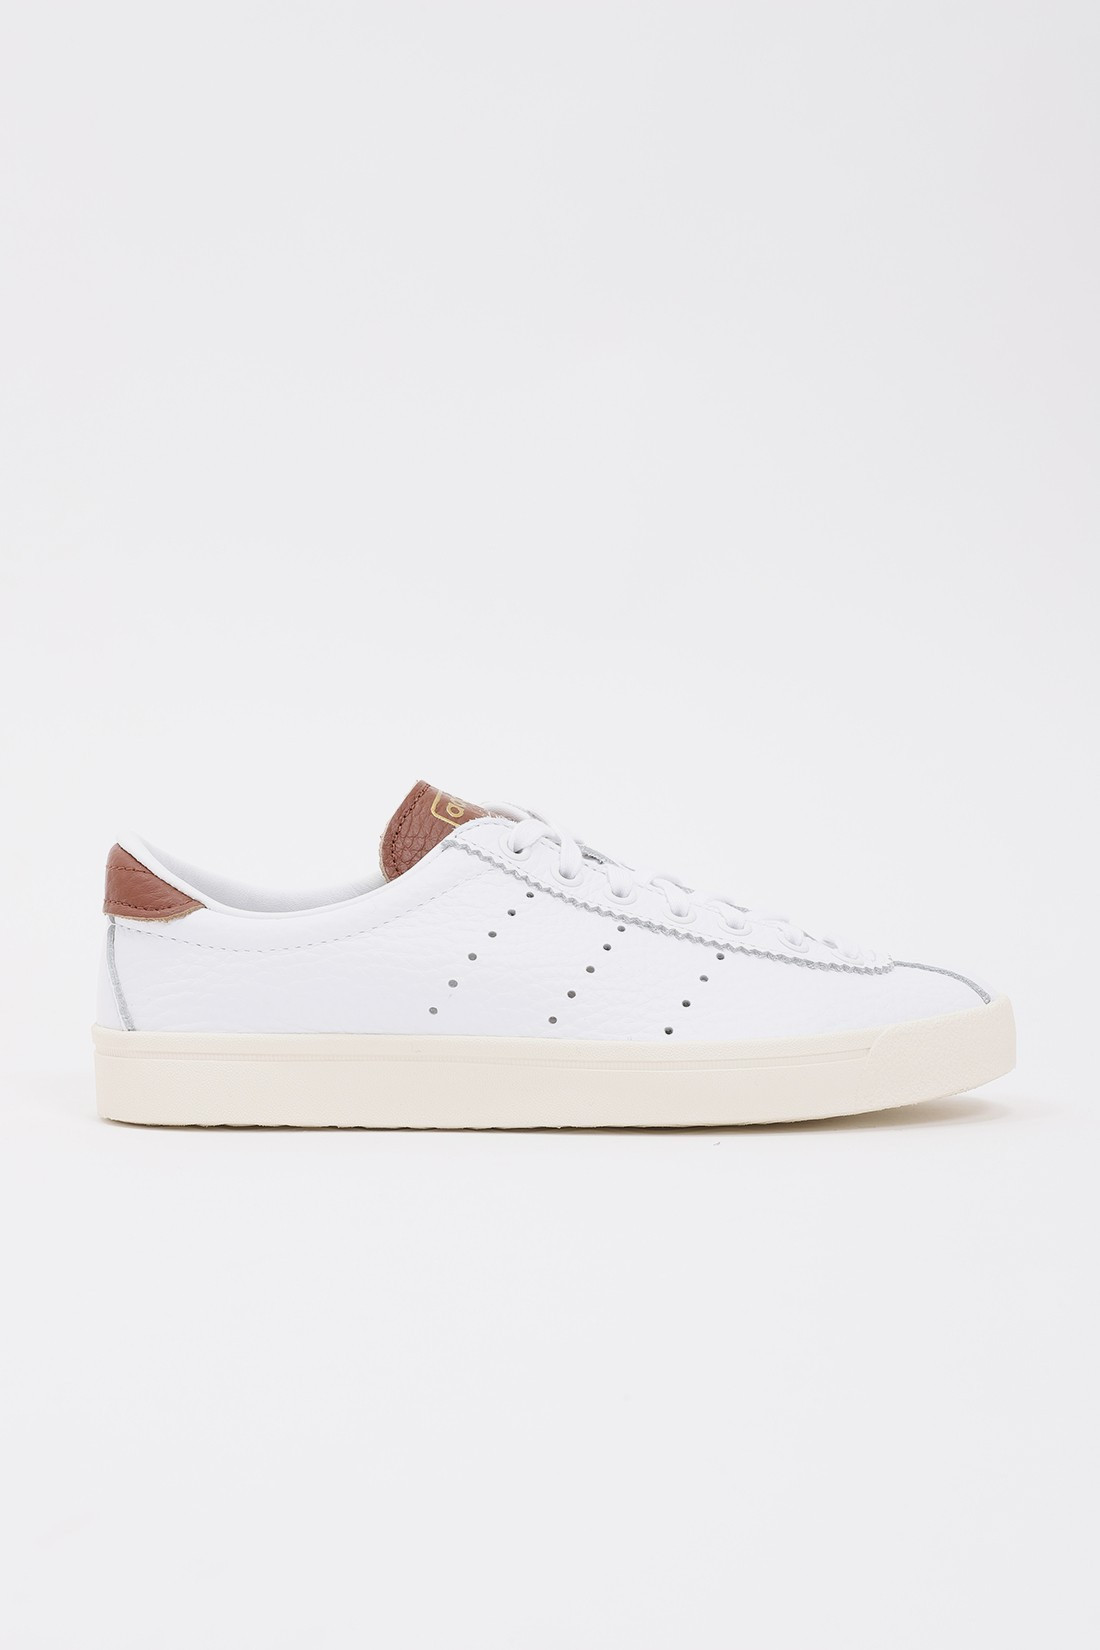 ADIDAS / Lacombe White / brown